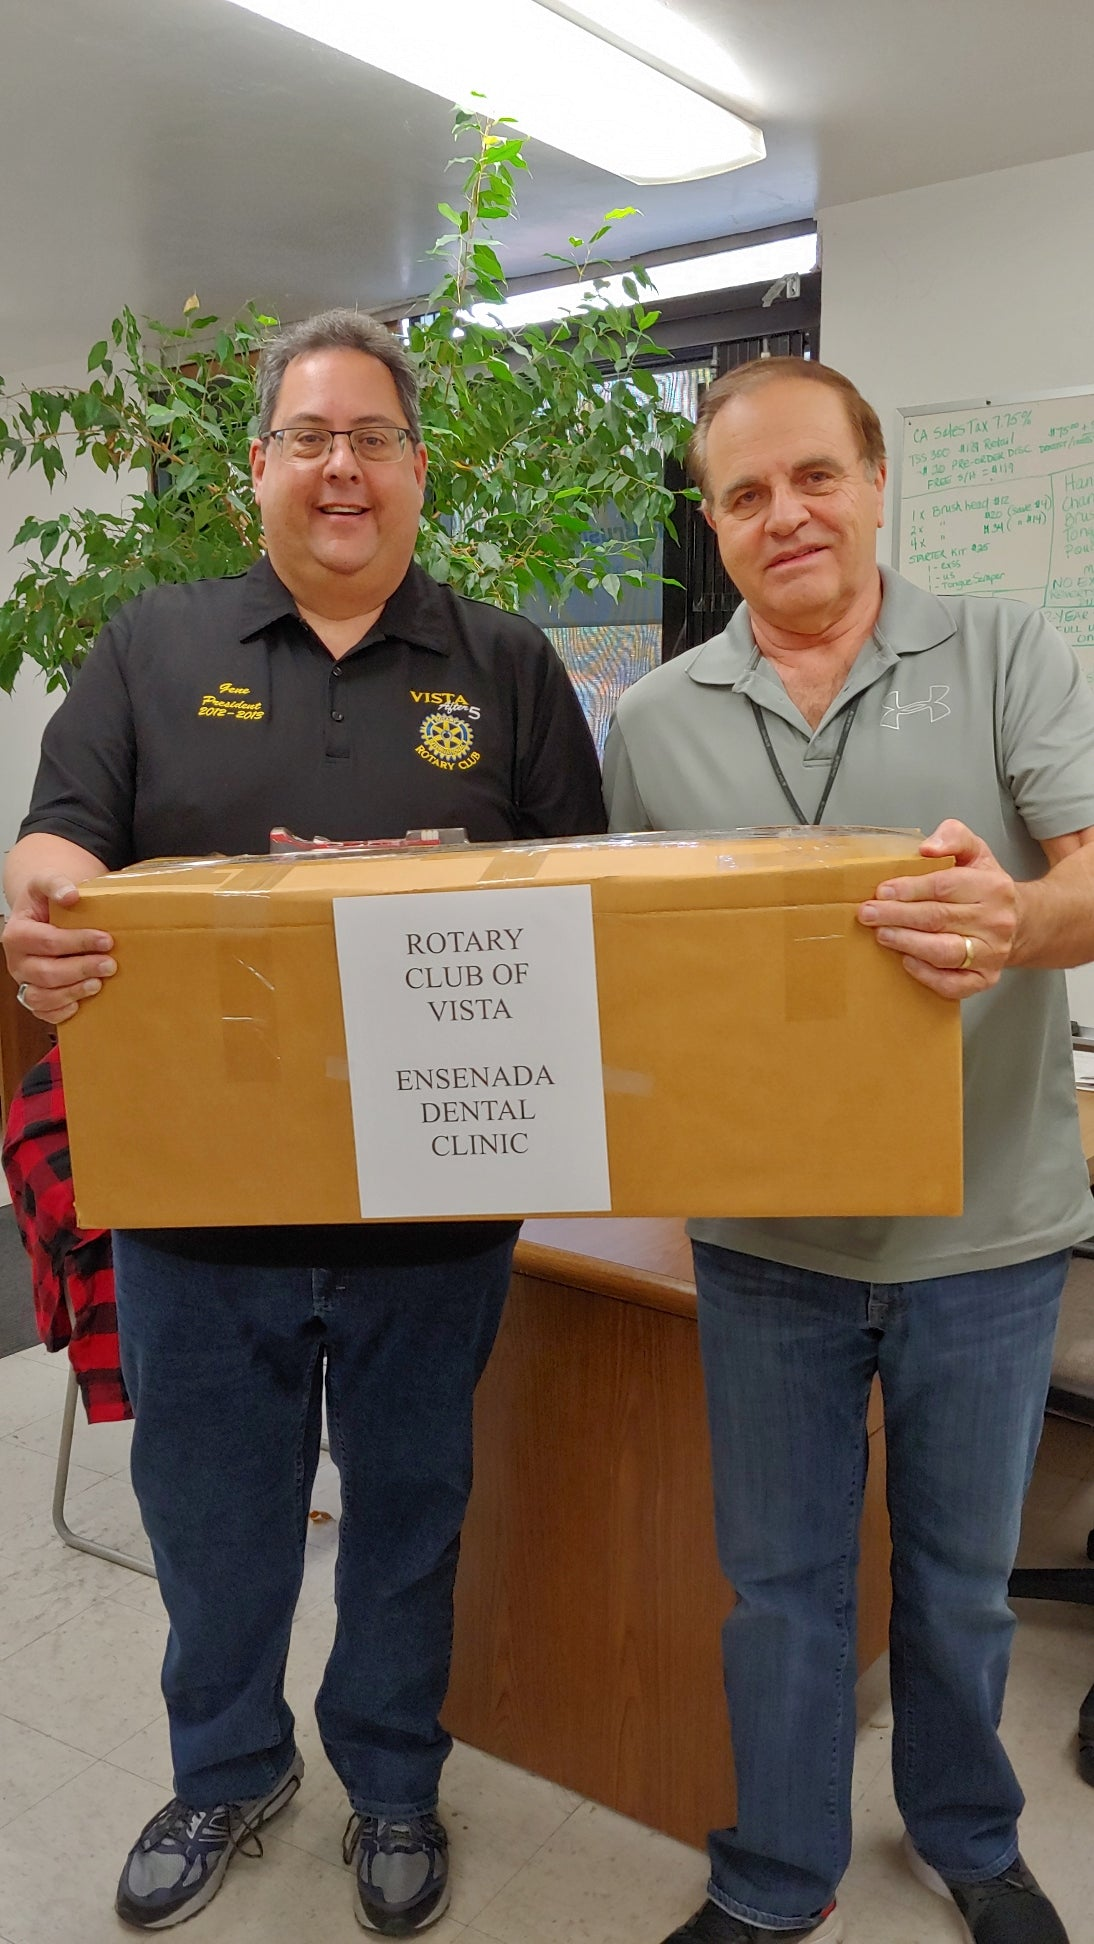 Donation to Vista Rotary Club for Ensenada Dental Clinic